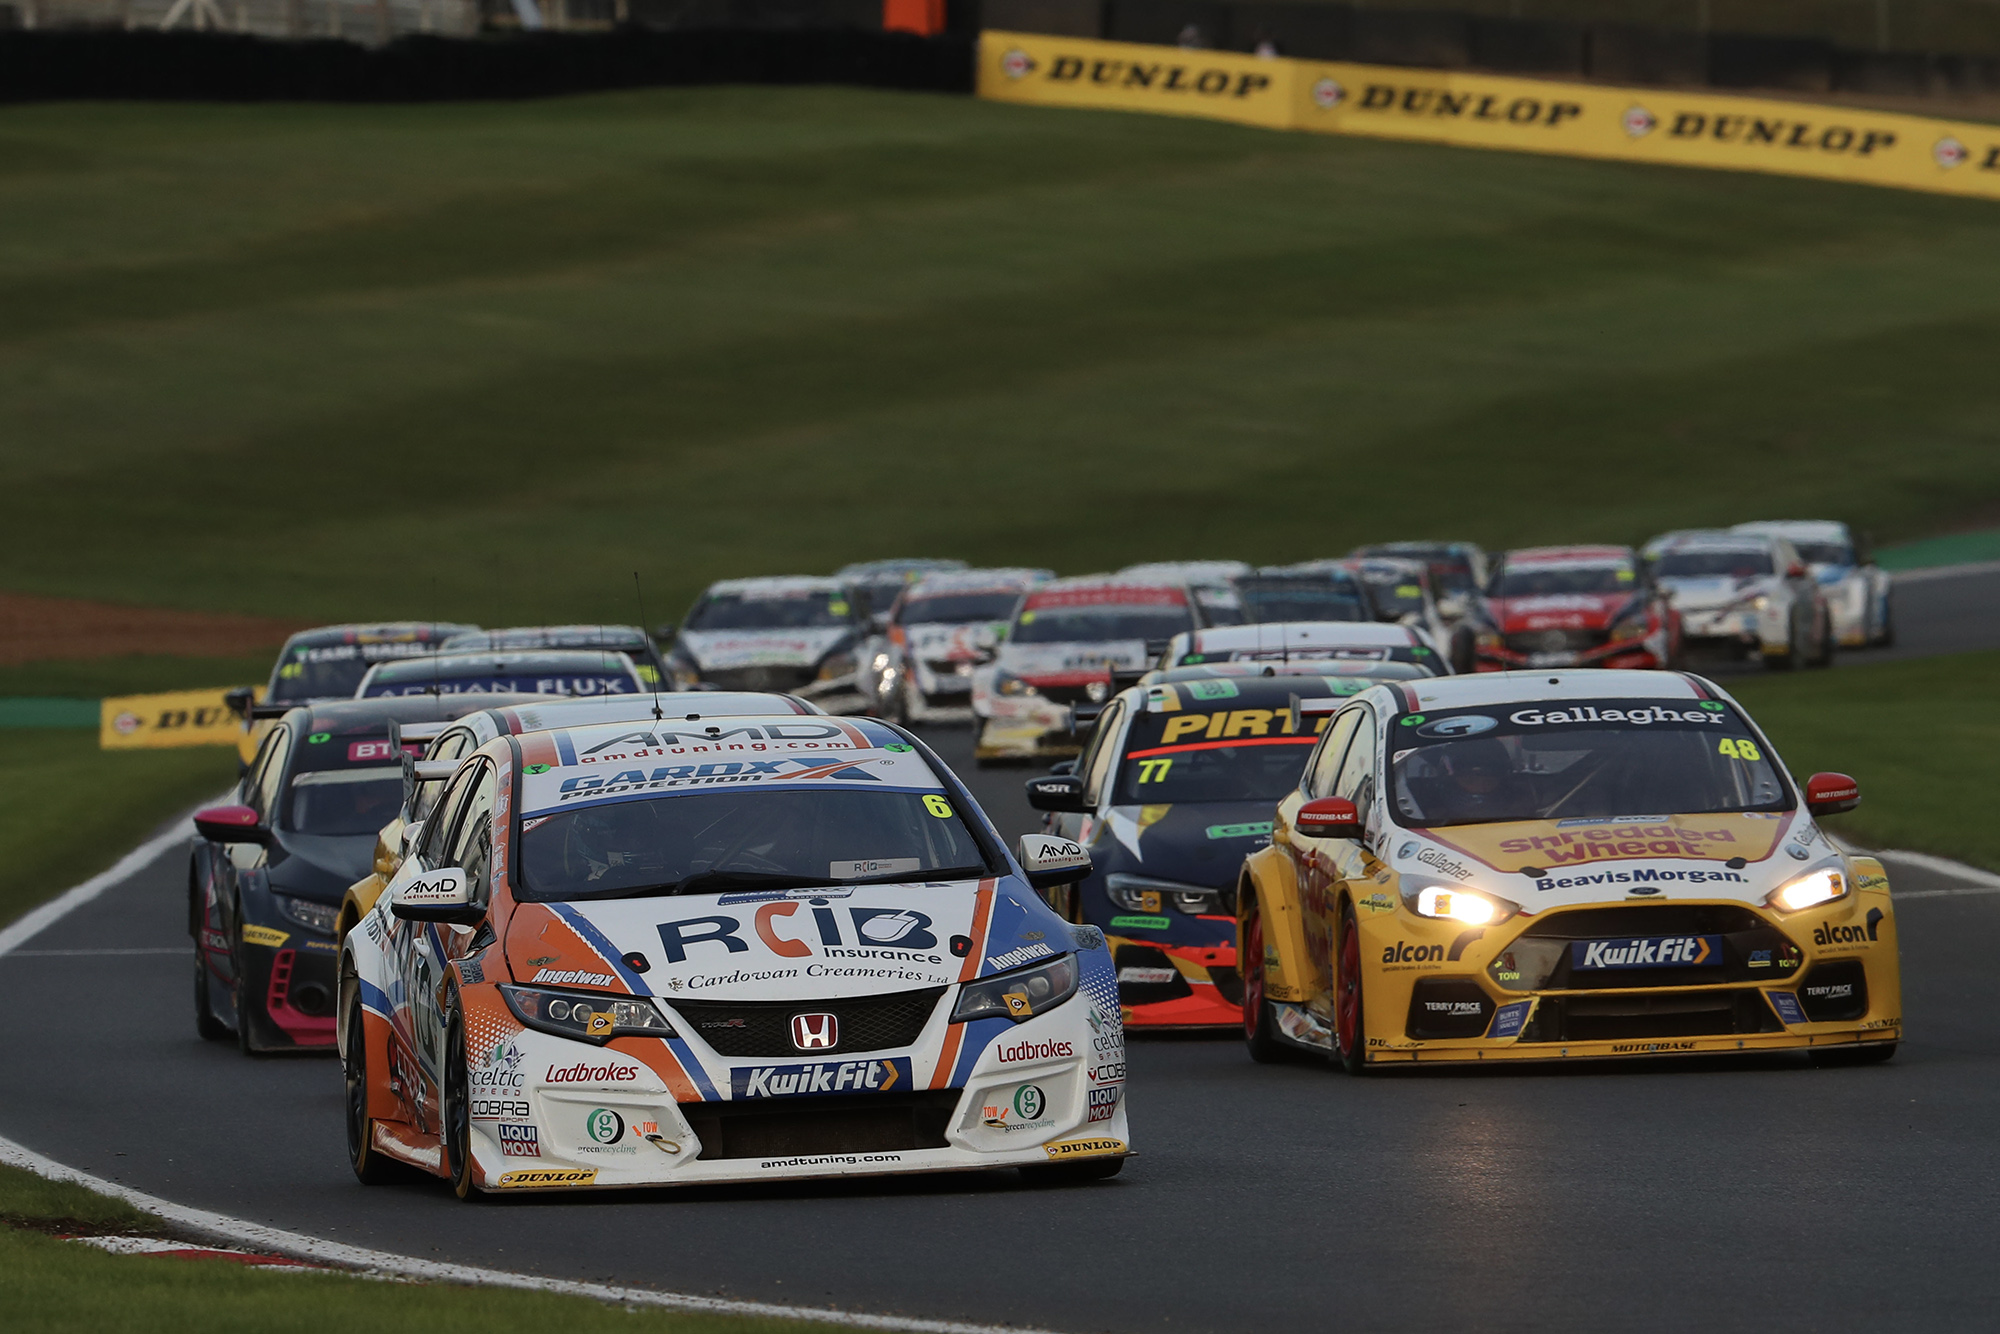 BTCC thriller sheds light on F1 identity crisis